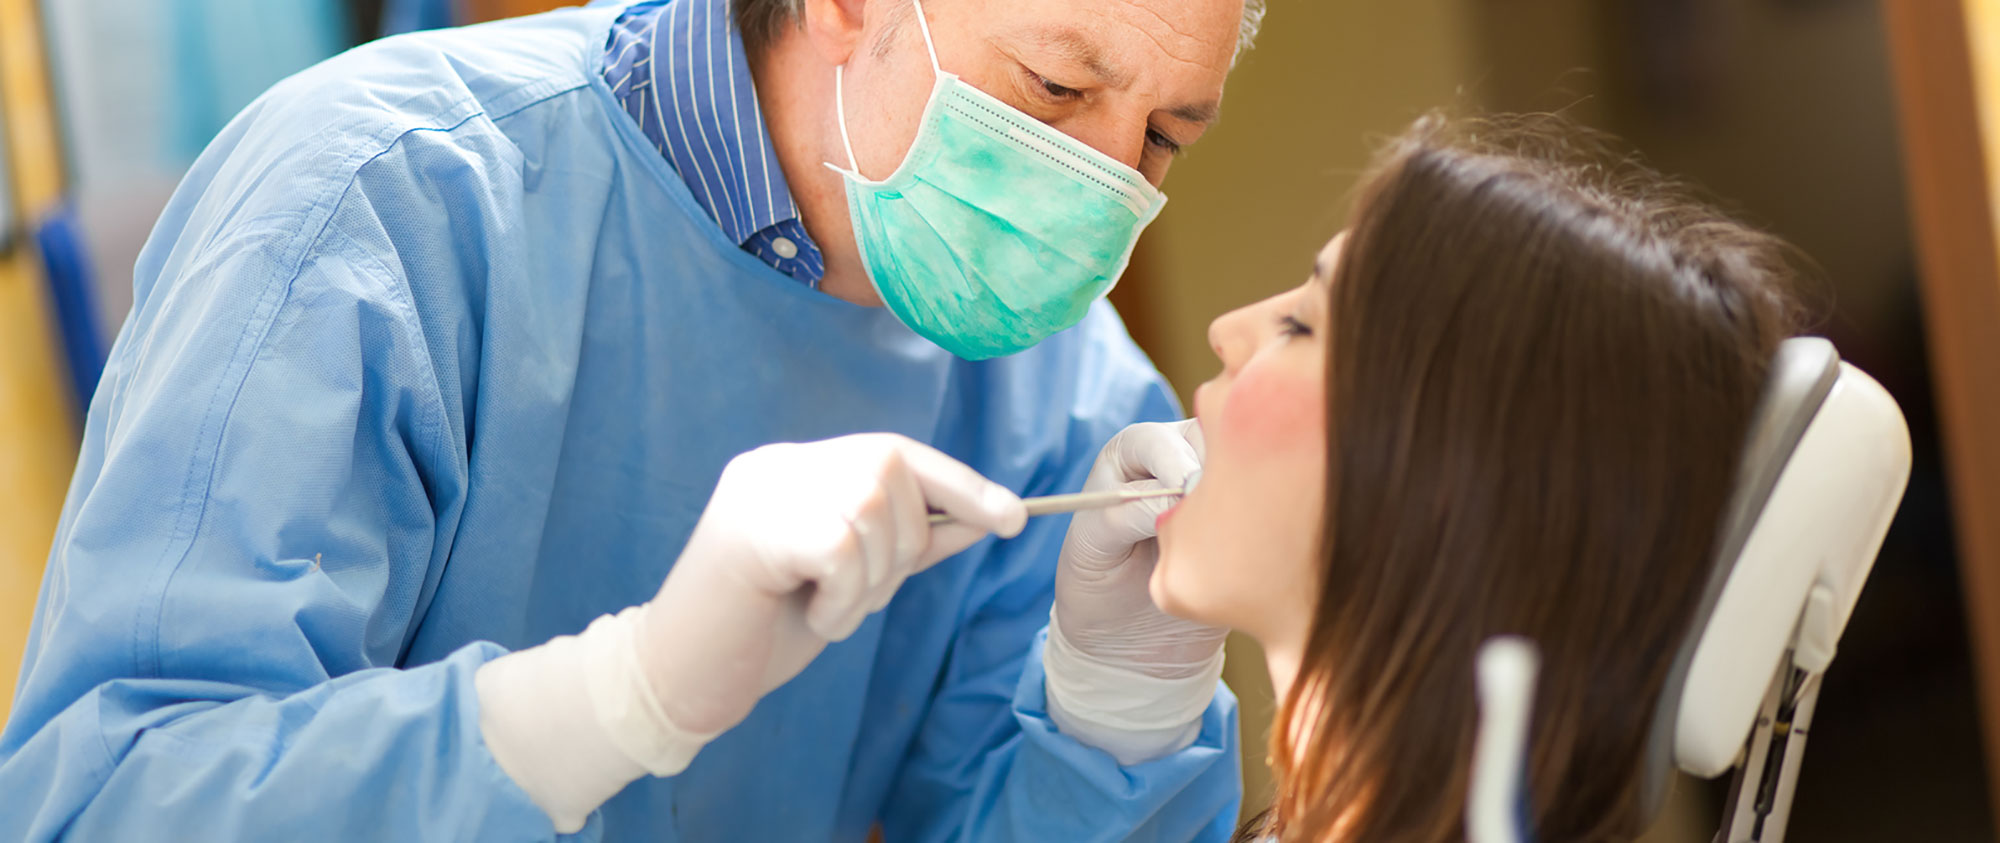 Dentist in Eagan Checking patients teeth.